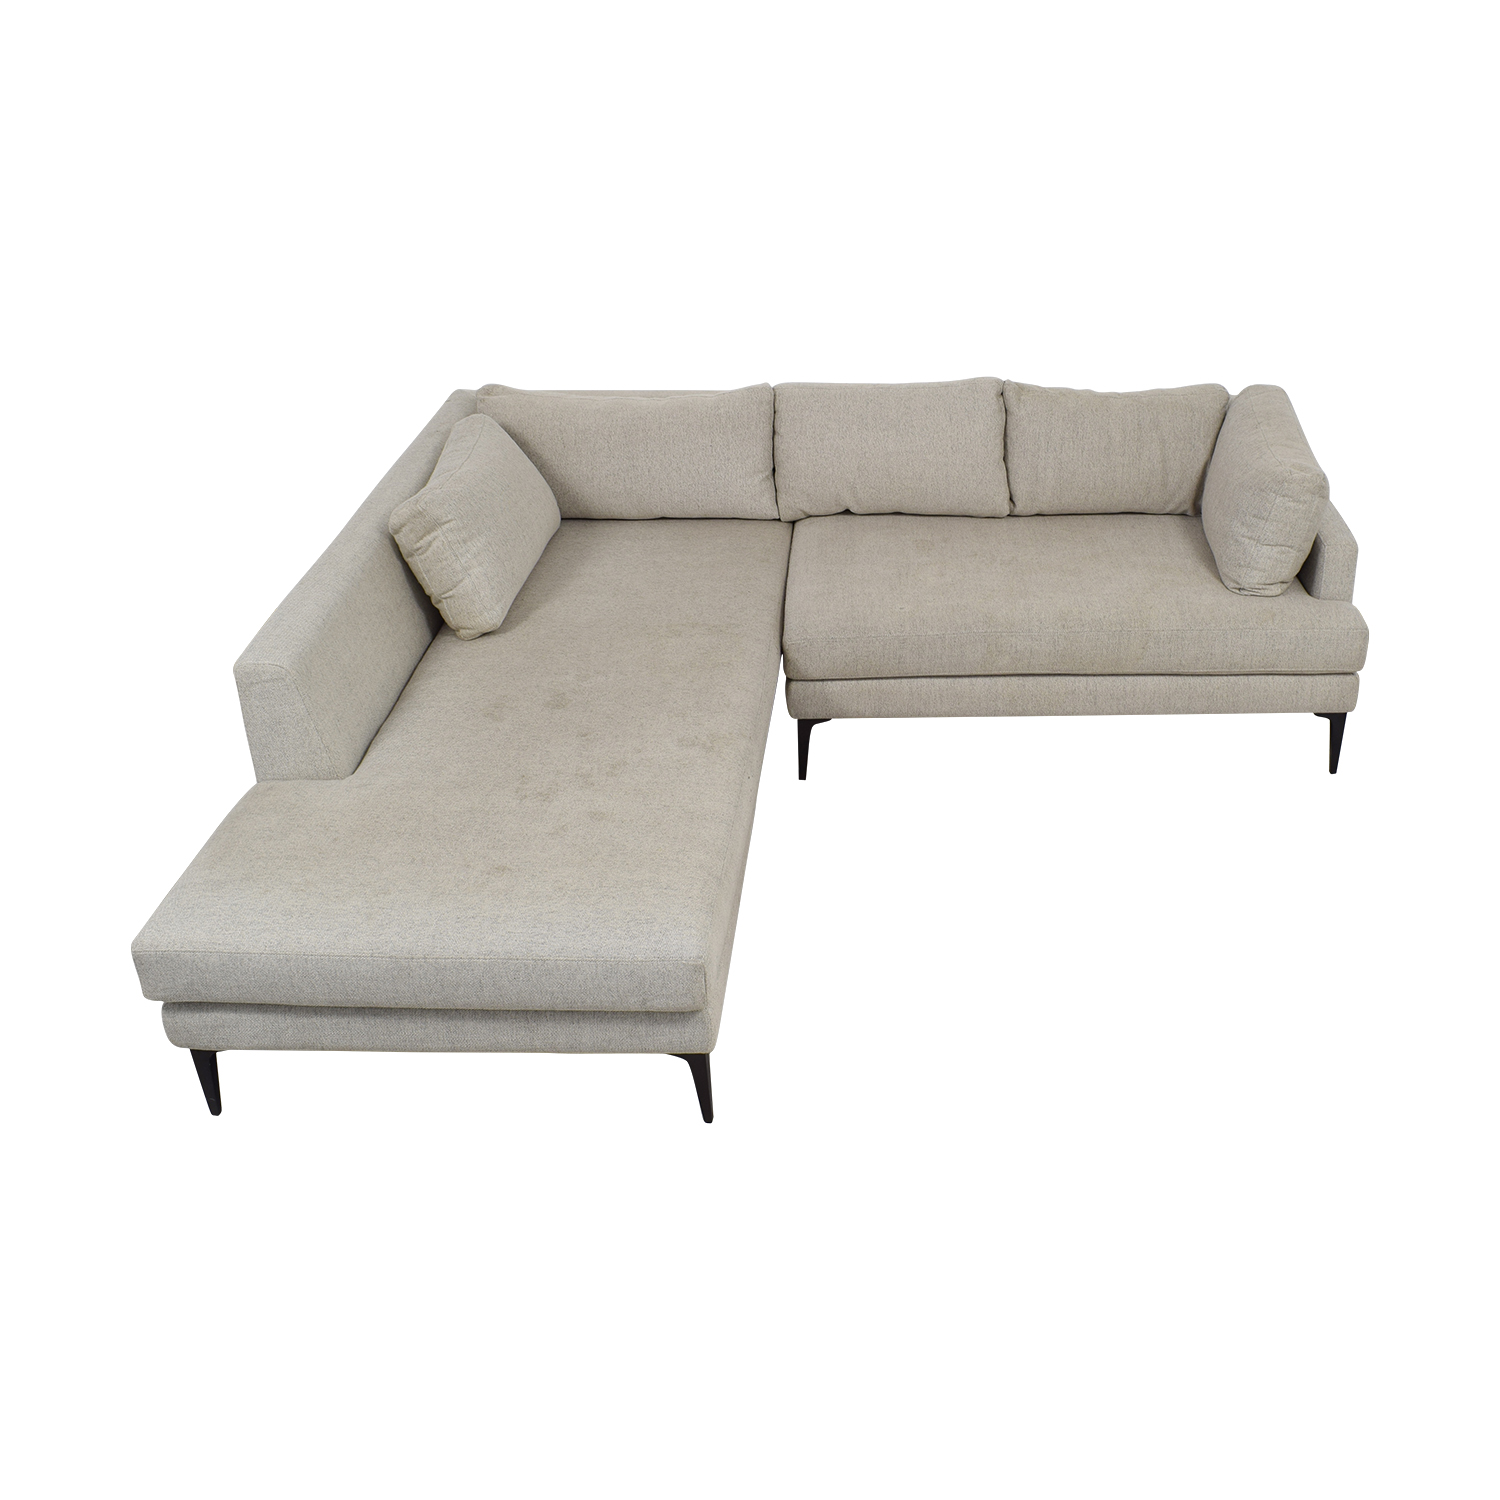 buy West Elm West Elm Beige Chaise Sectional online